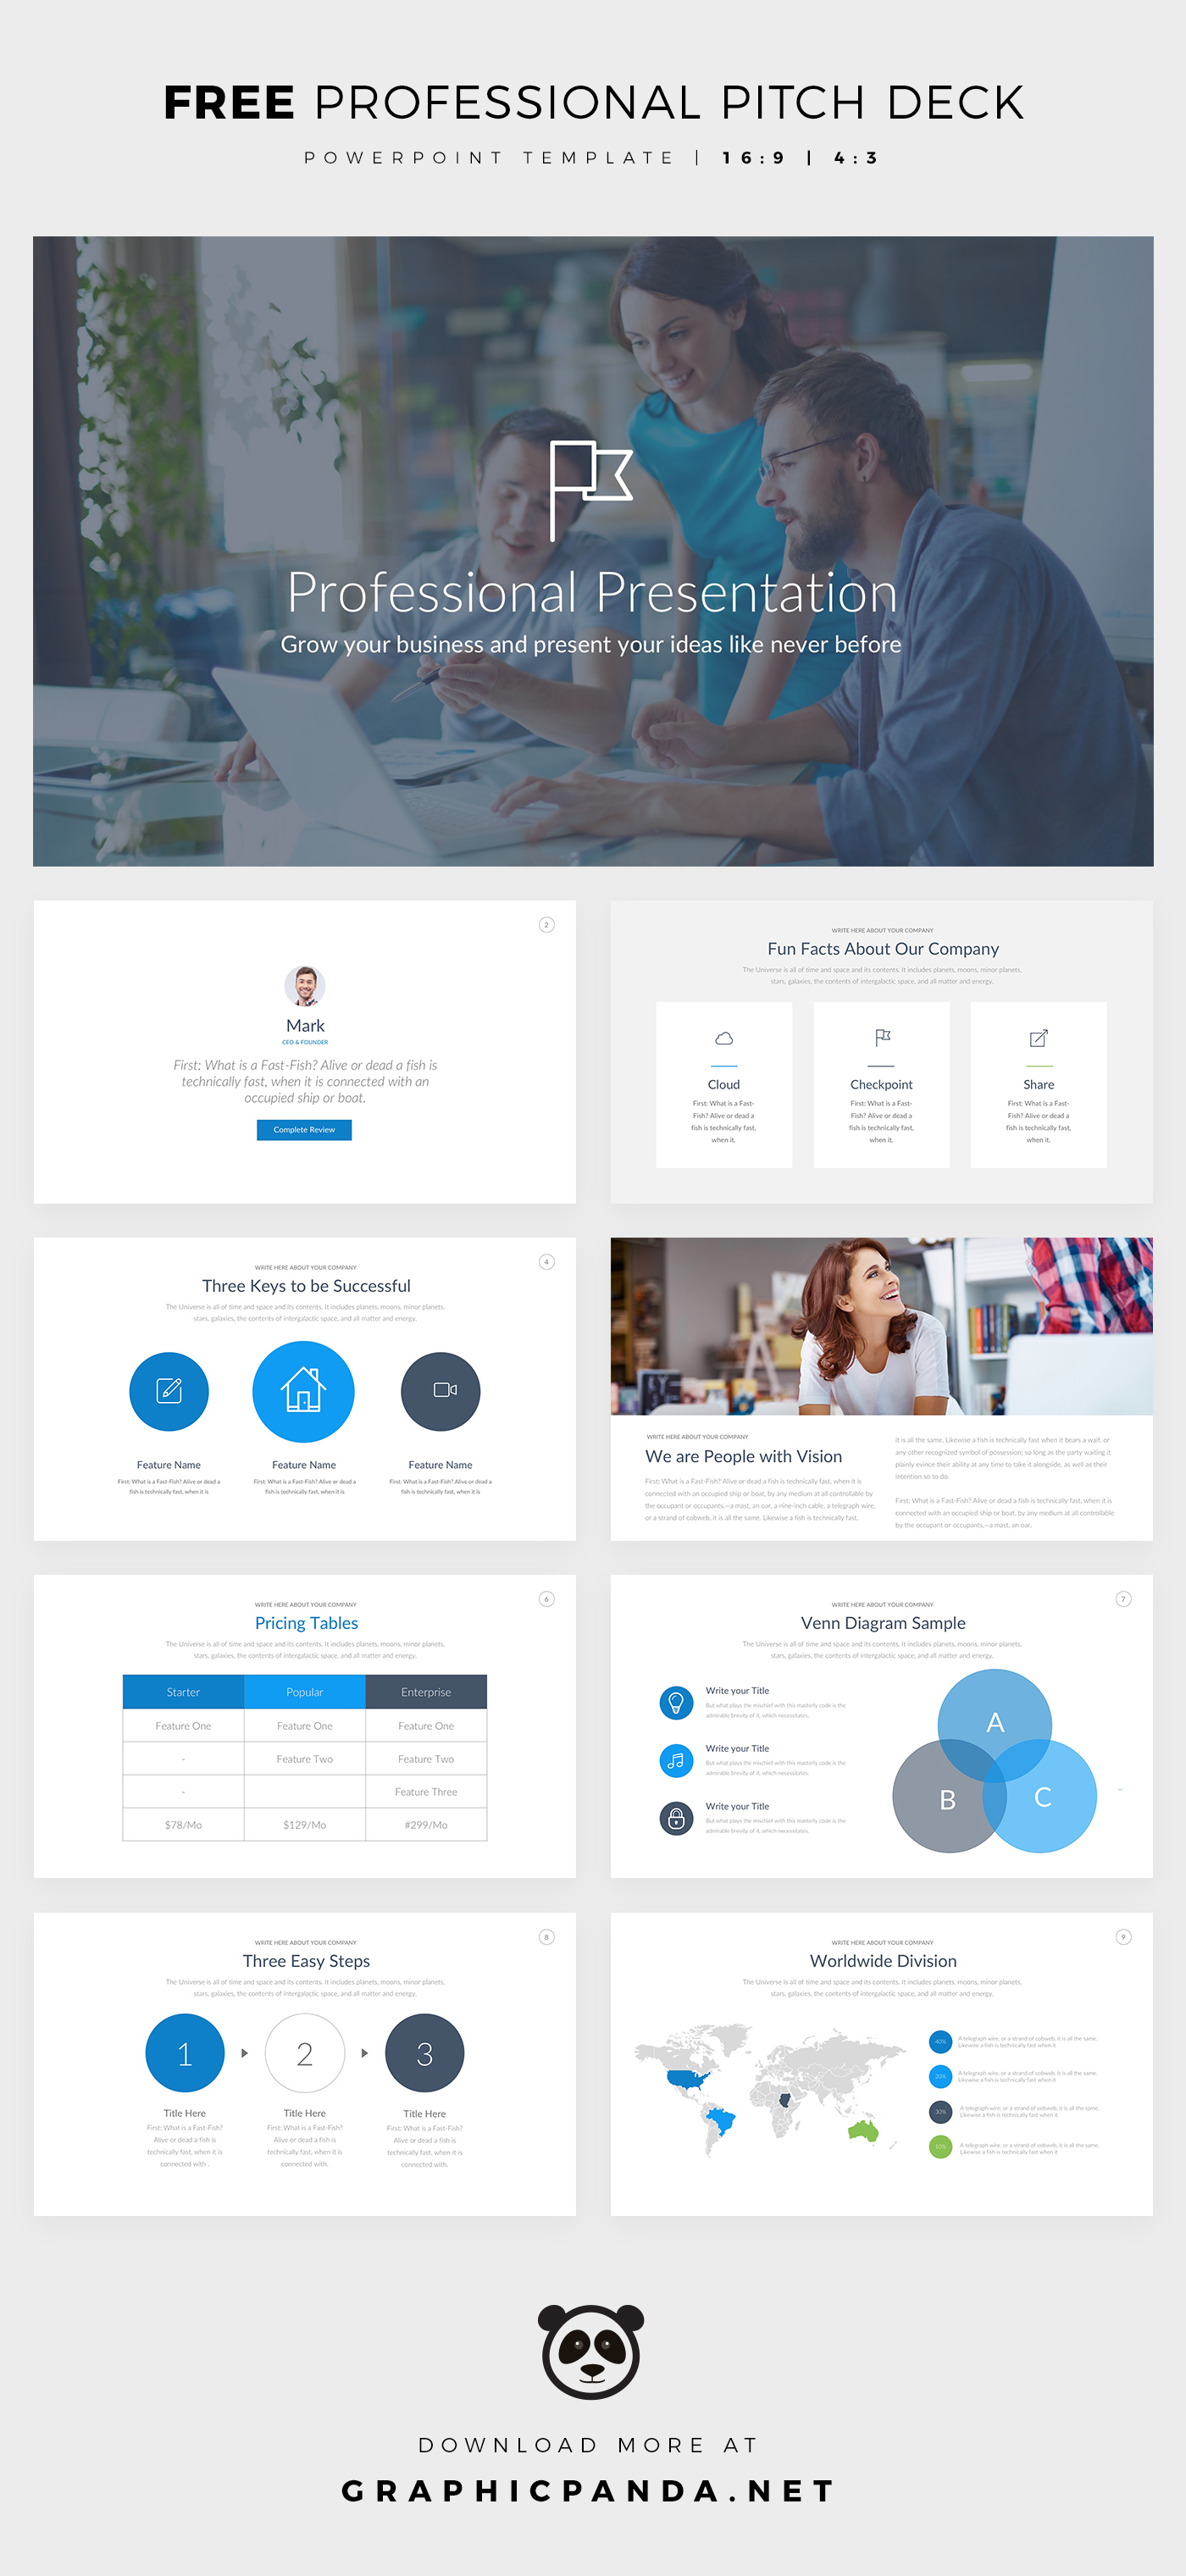 free professional pitch deck ppt template on behance